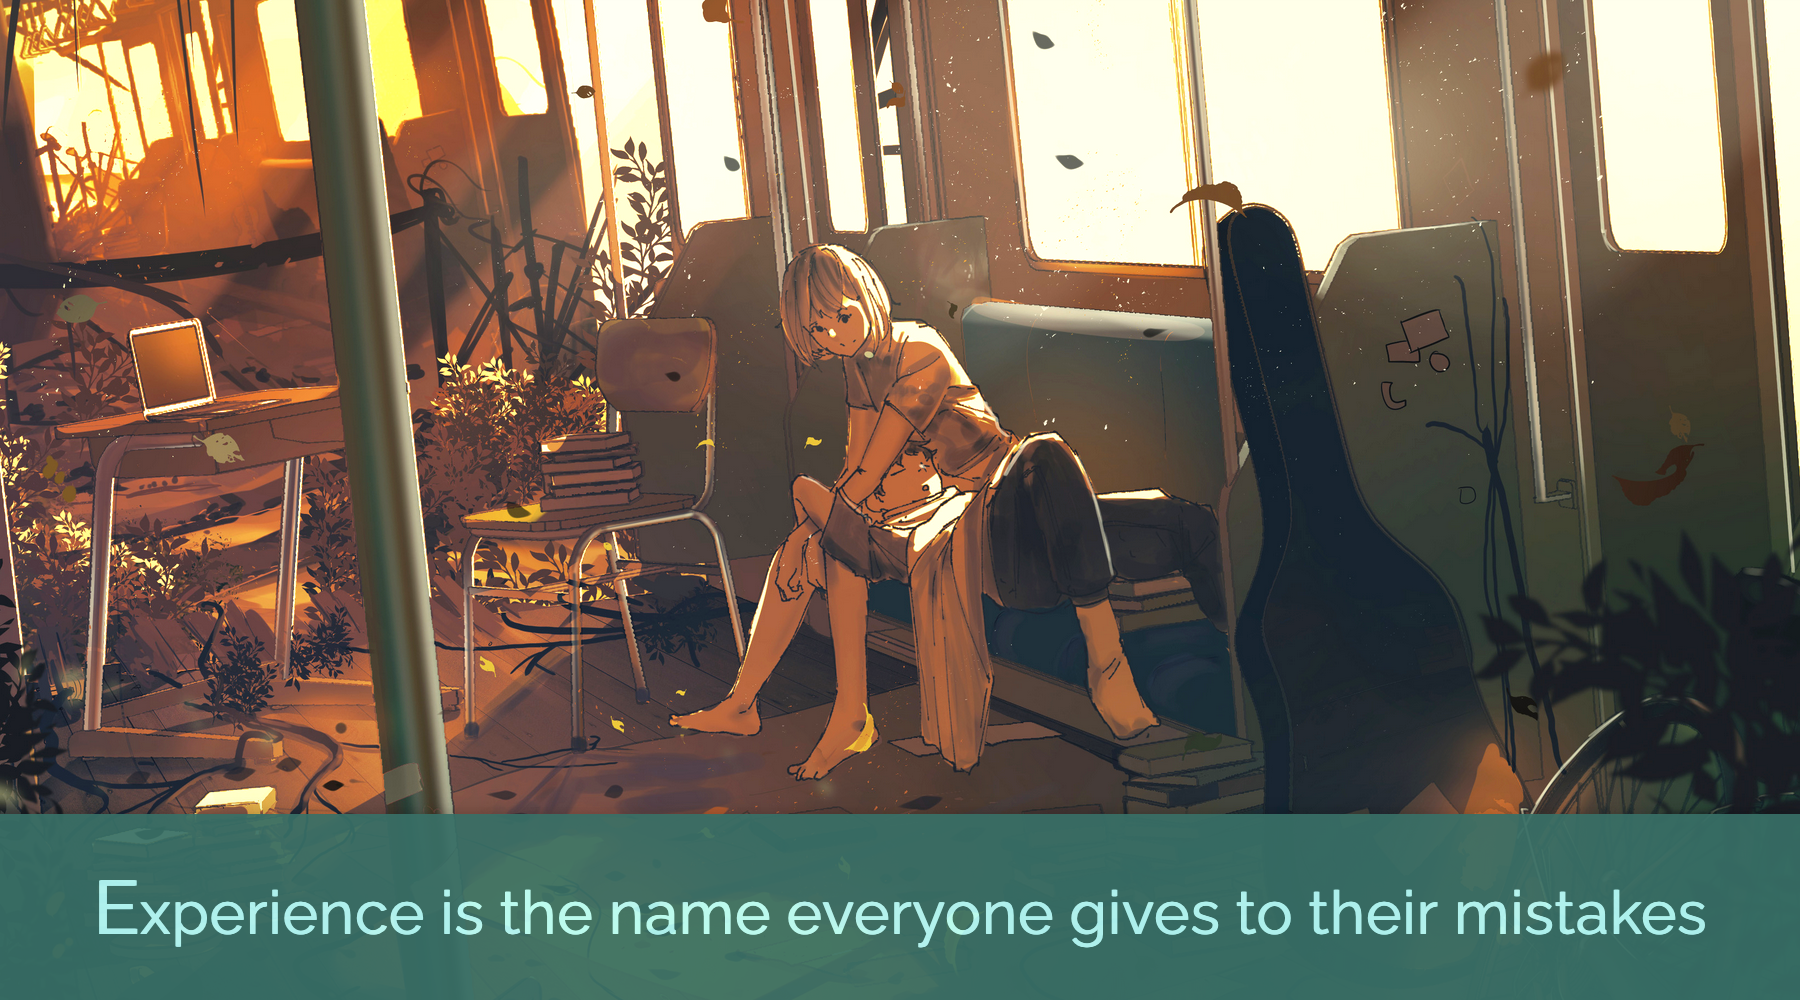 The quote 'experience is the name everyone gives to their mistakes' paired with a surreal image of two people on a train.